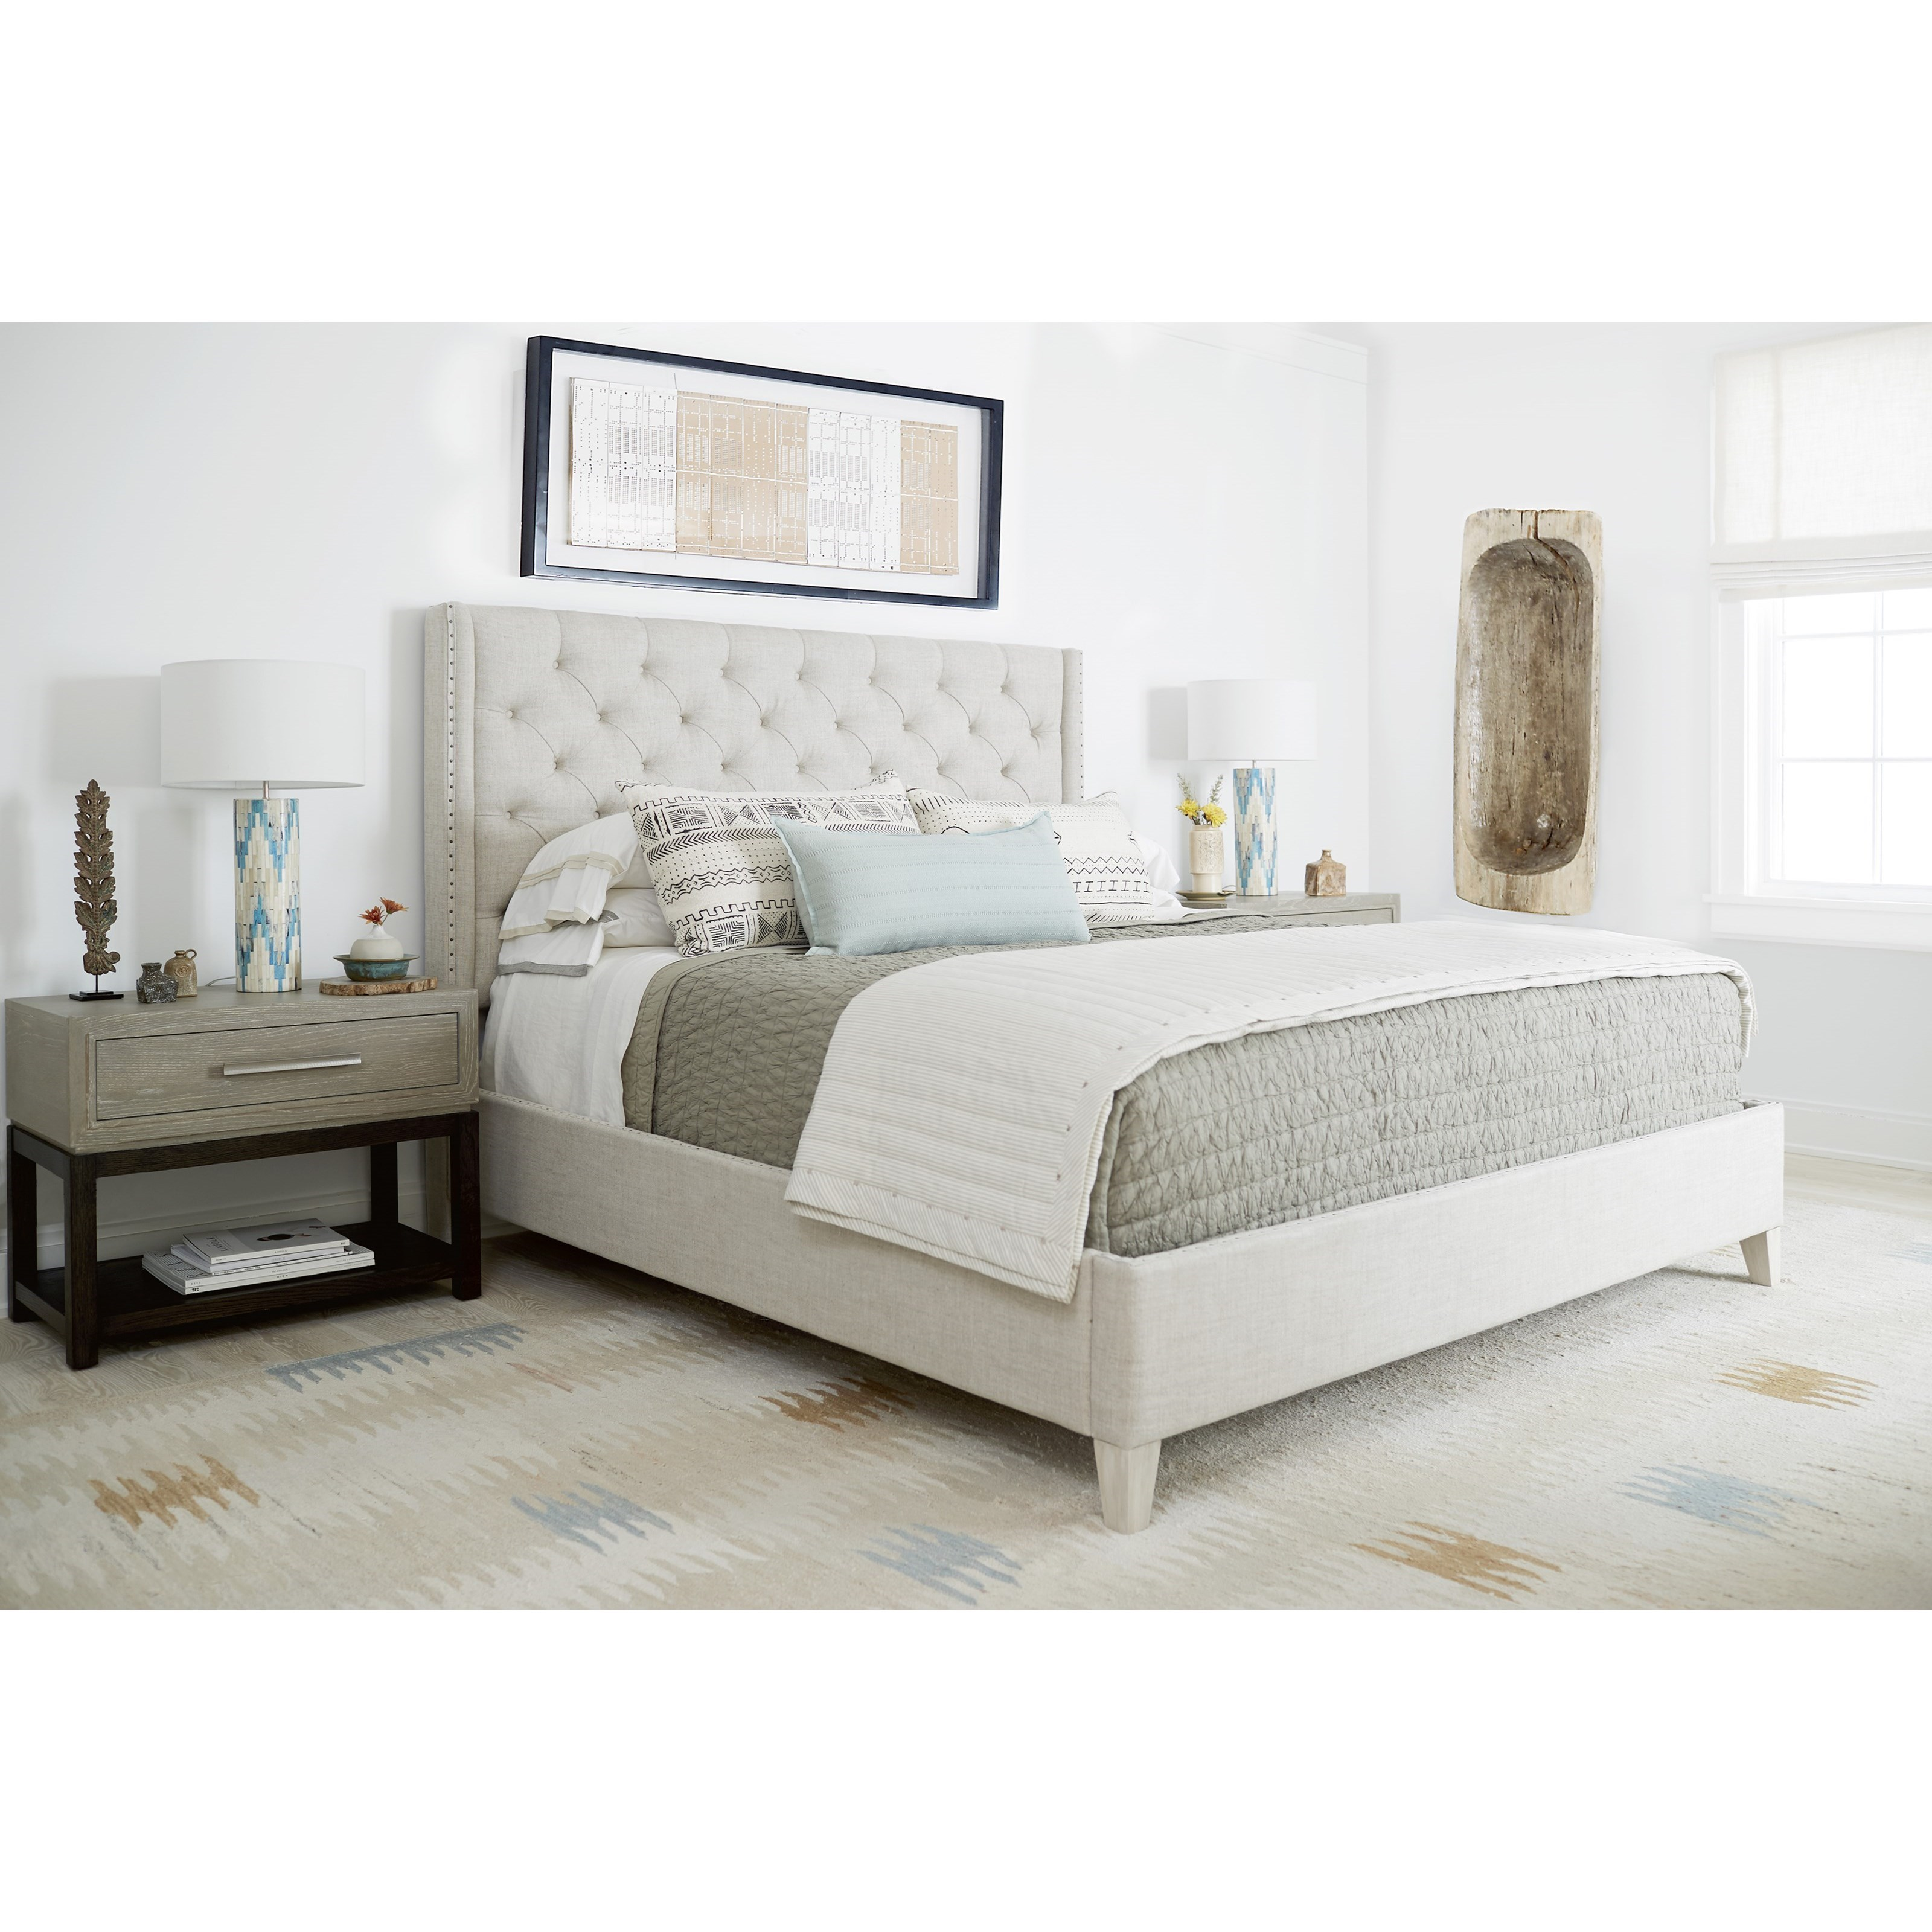 Zephyr Queen Bedroom Group by Universal at Baer's Furniture